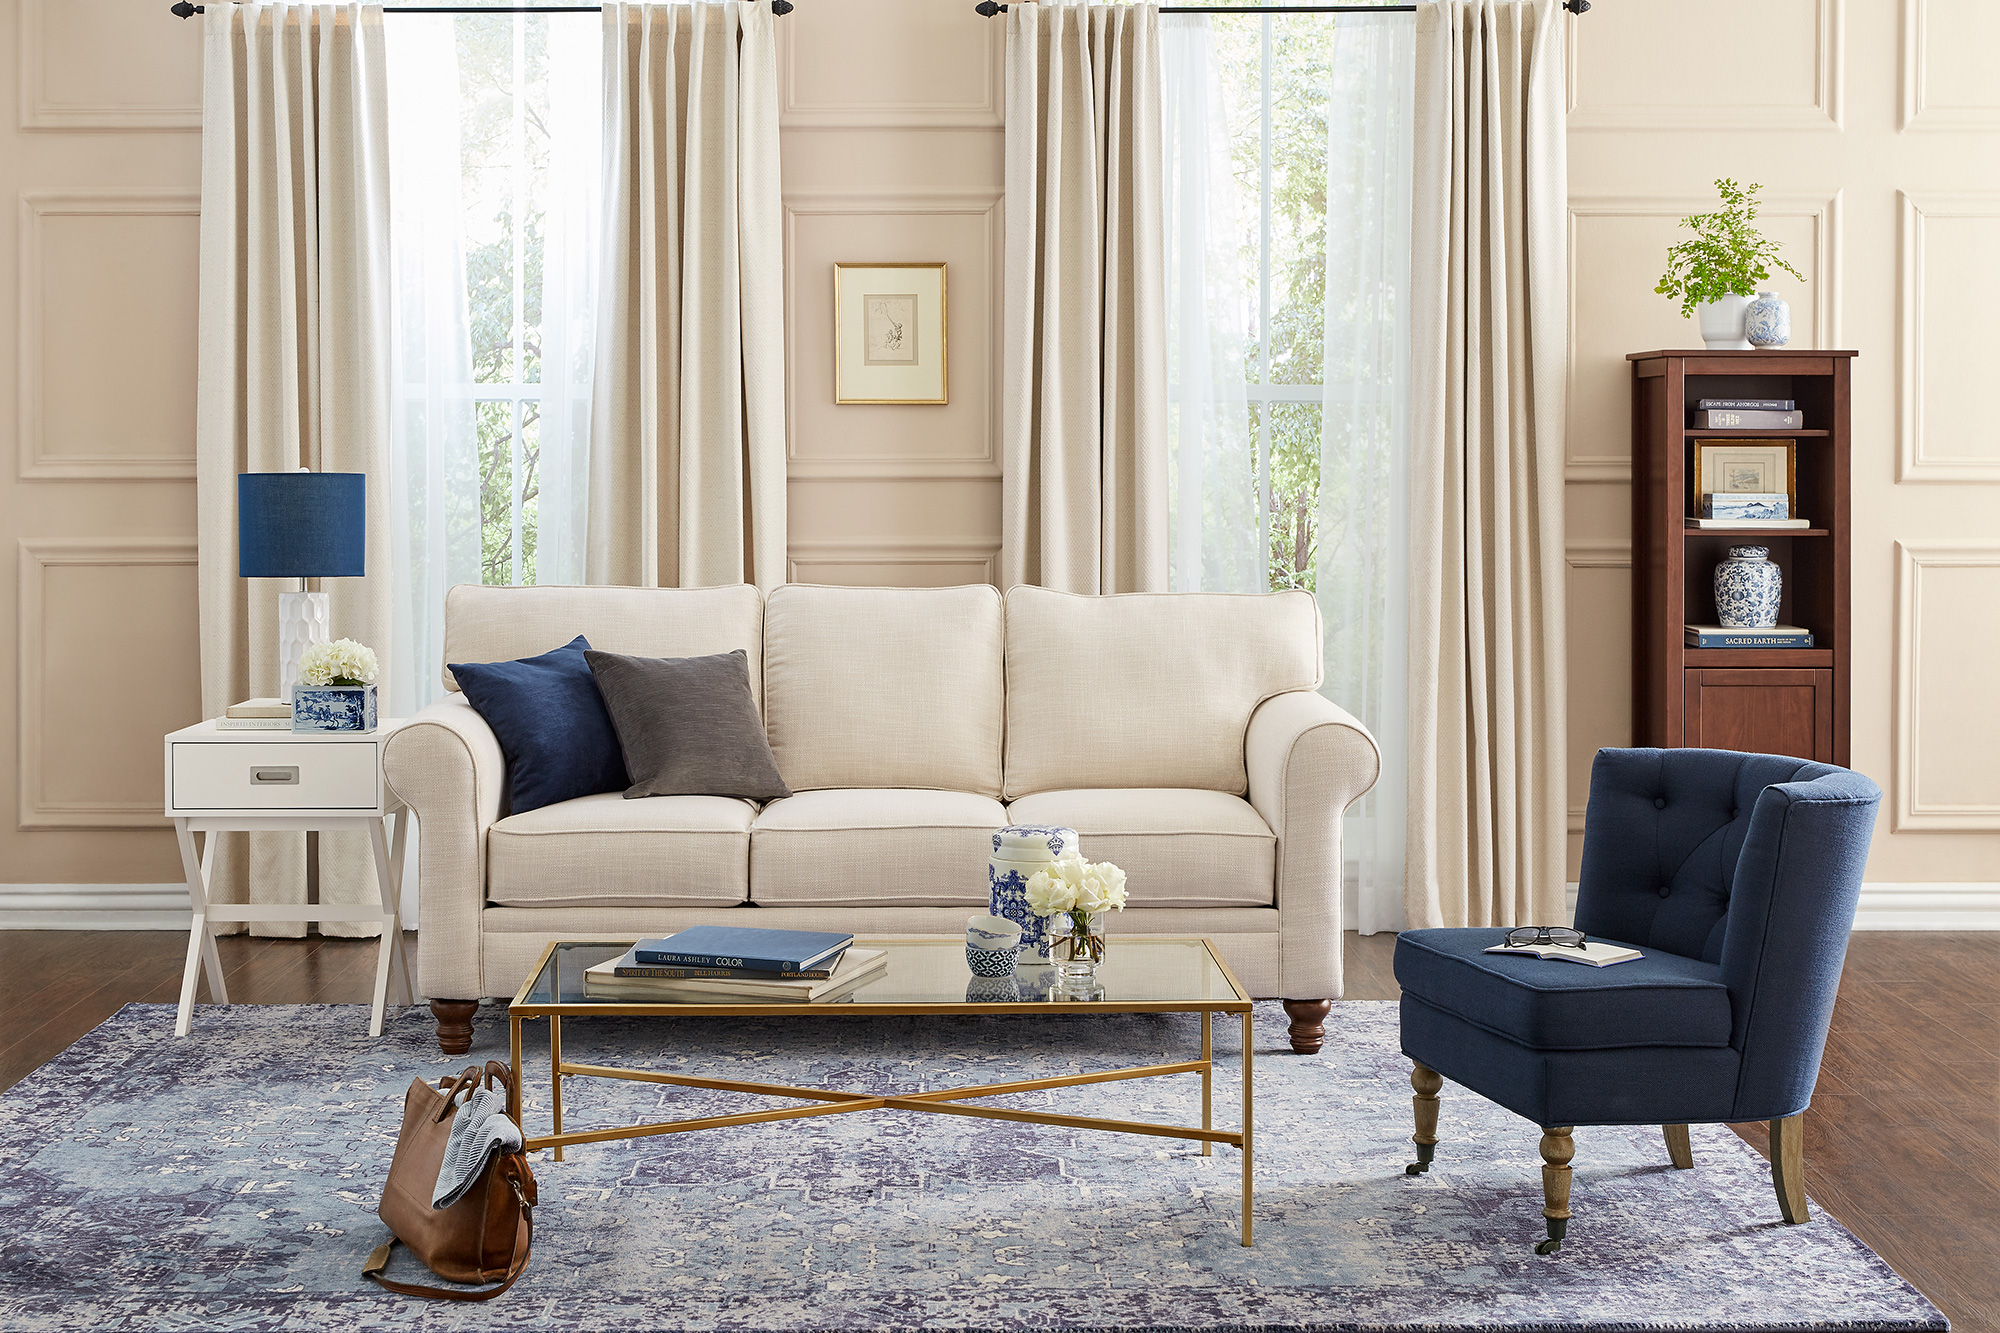 new year accent treasures timeless table ravenna home living nate berkus round gold with marble top launches its own furnishings collection take peek the affordable items fall